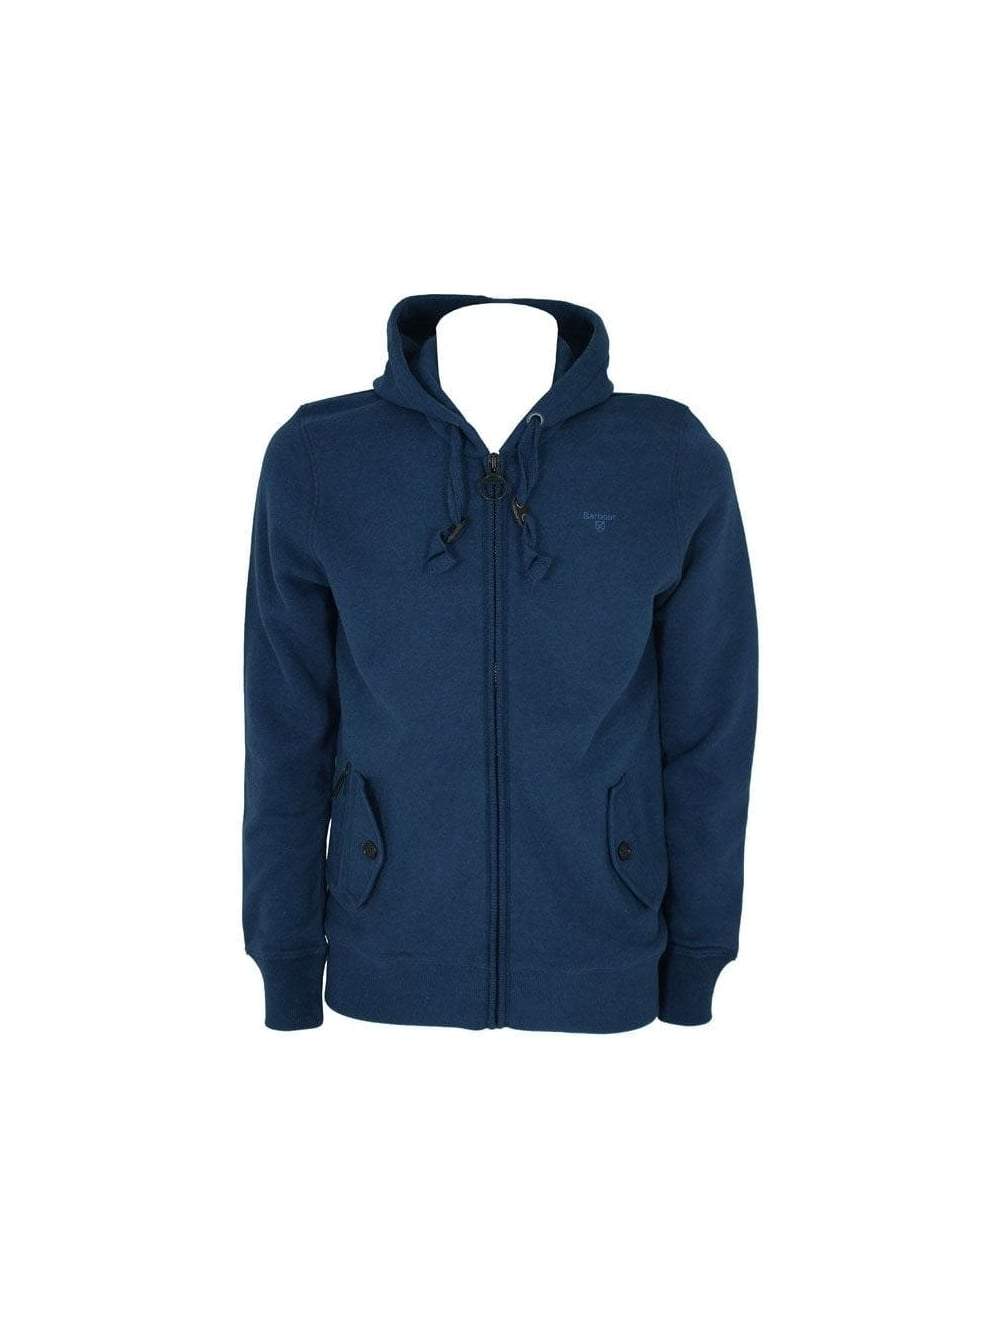 3d59f792ee3f4 Barbour - Barbour Essential Hooded Sweat - Navy Marle - Barbour ...